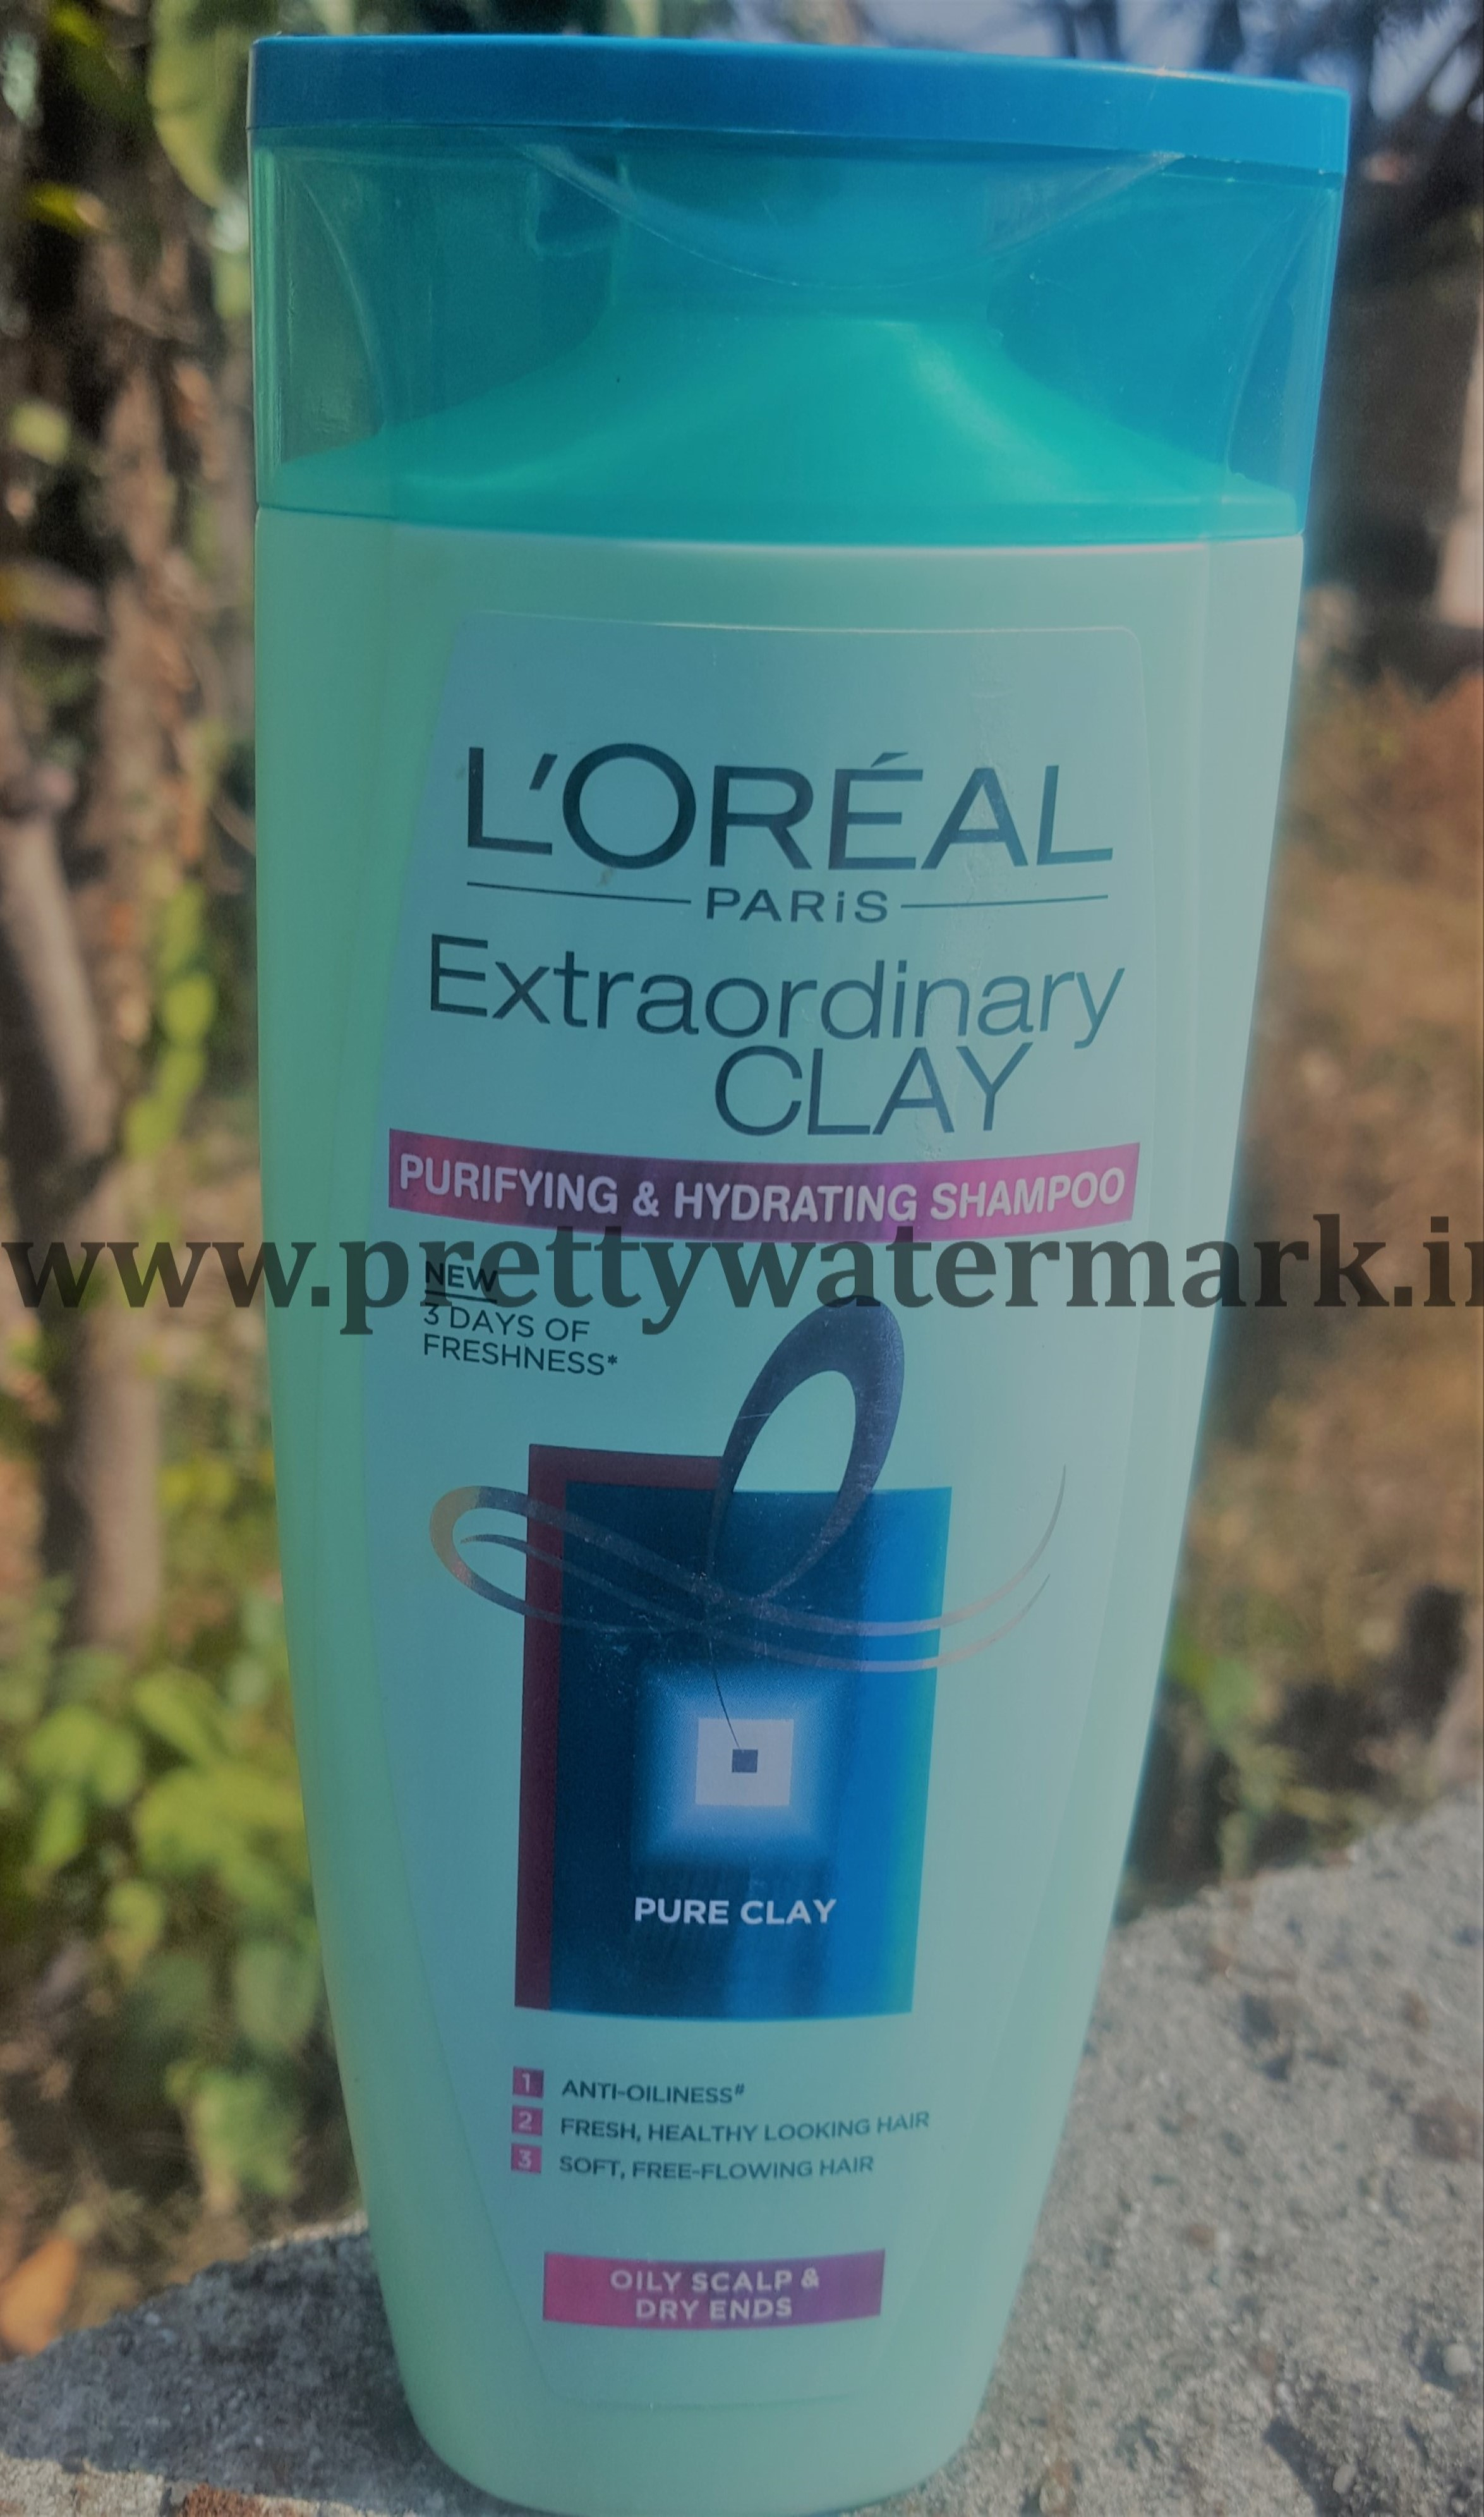 L'OREAL PARIS EXTRAORDINARY CLAY SHAMPOO -REVIEW